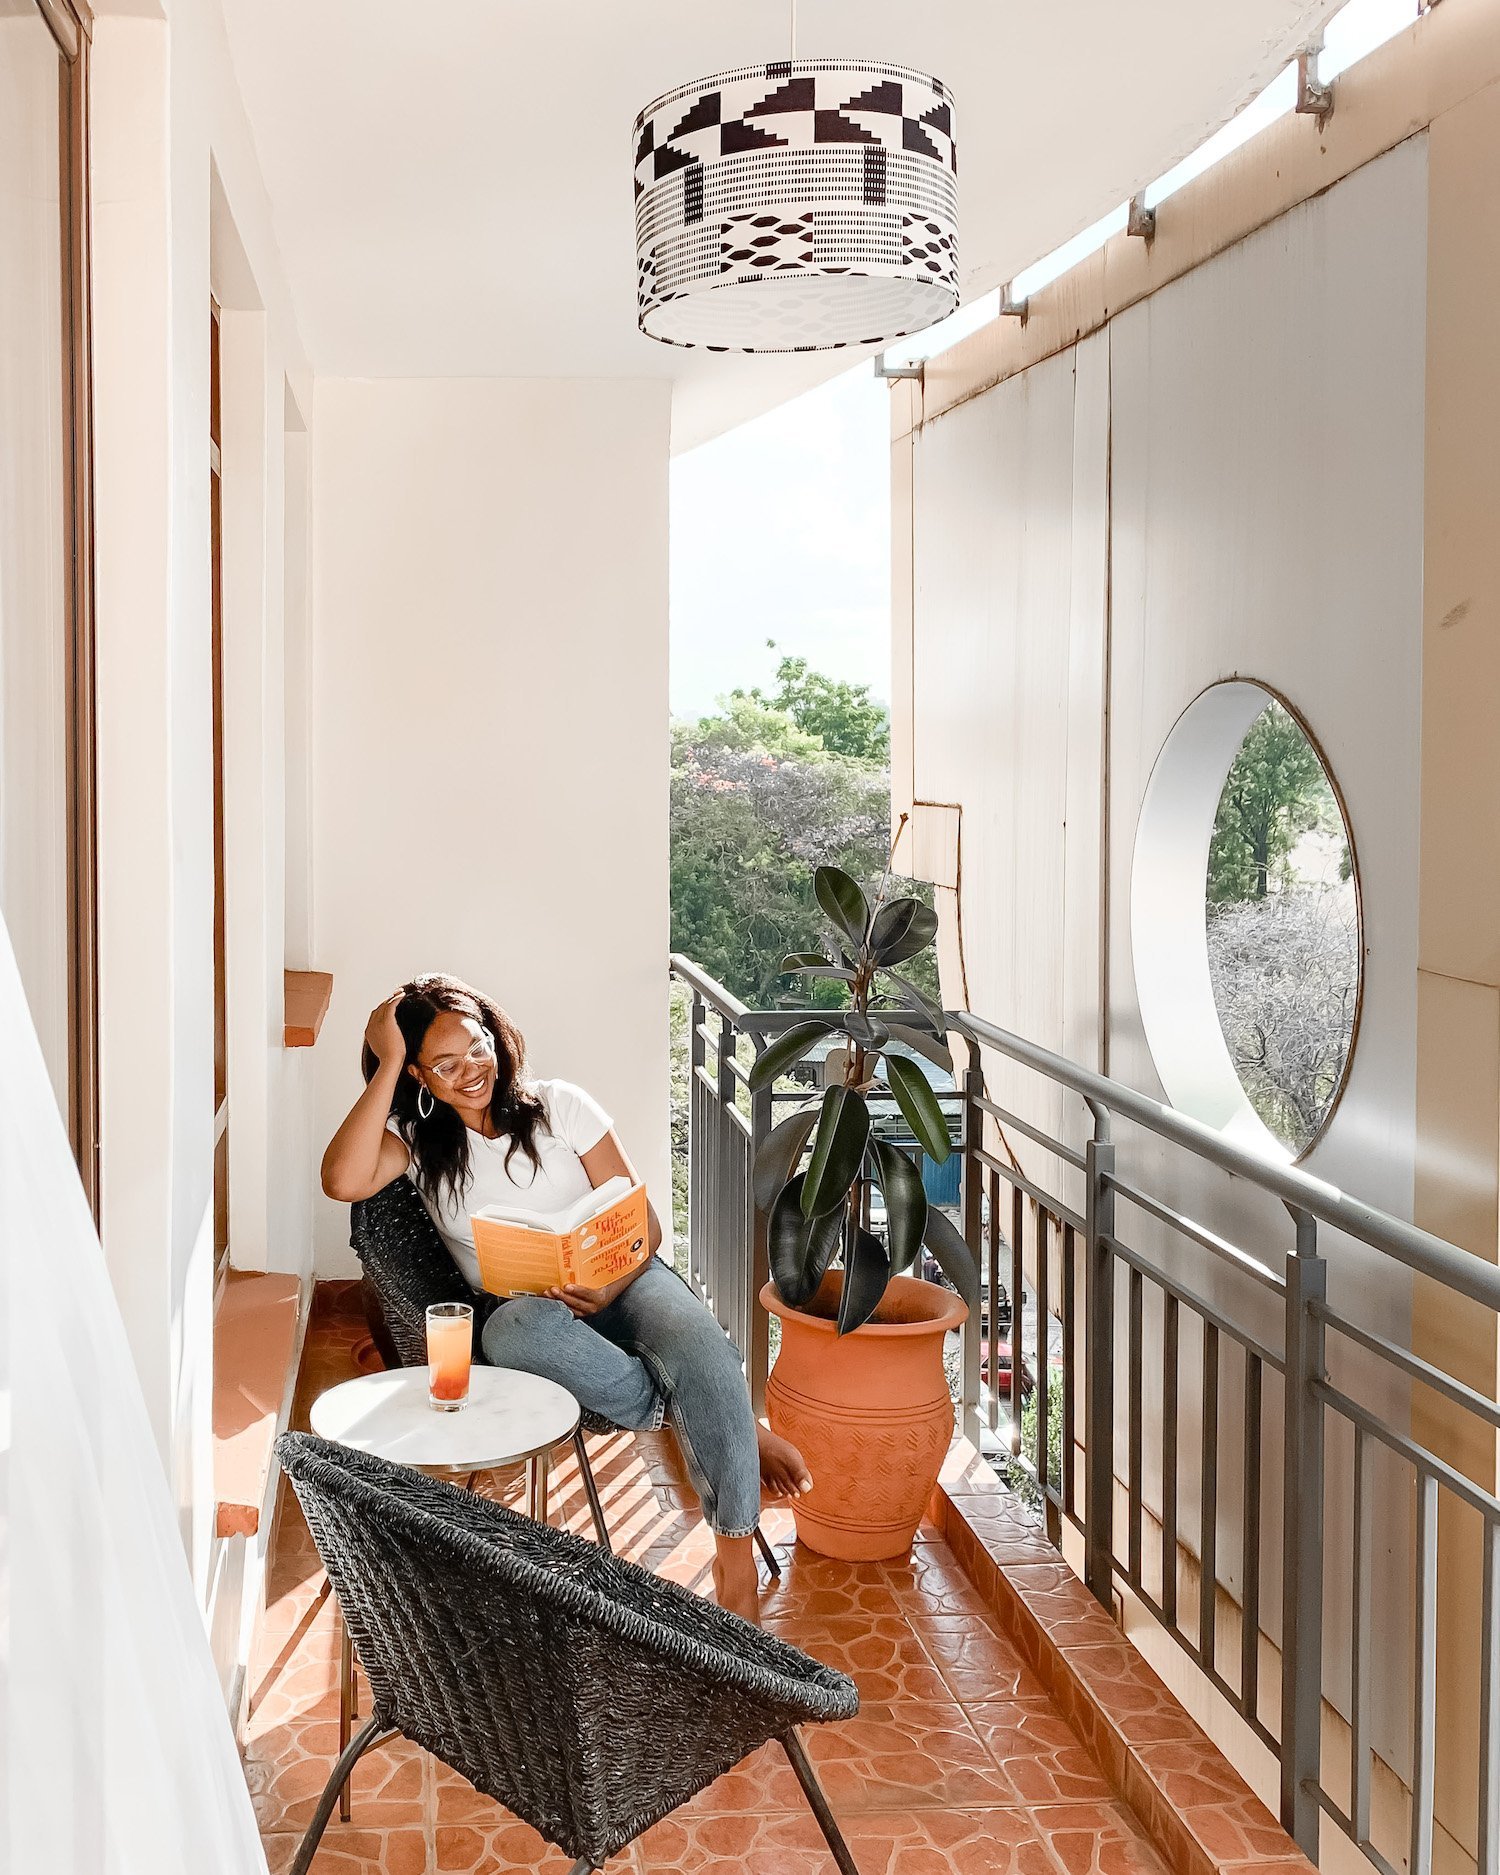 Ijeoma Kola reading book on balcony with decor from Black owned home decor brands